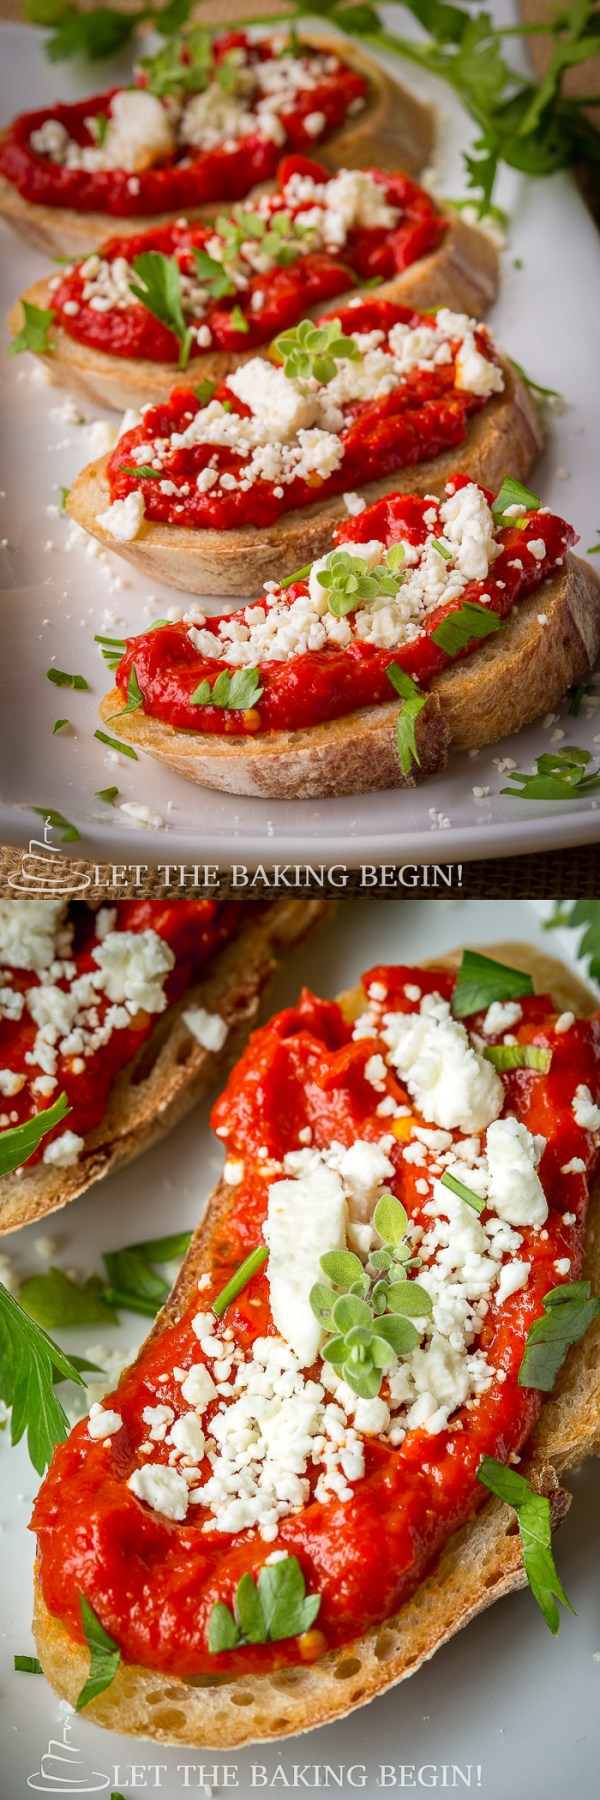 Spicy roasted pepper feta canap s let the baking begin for Where can i buy canape cups